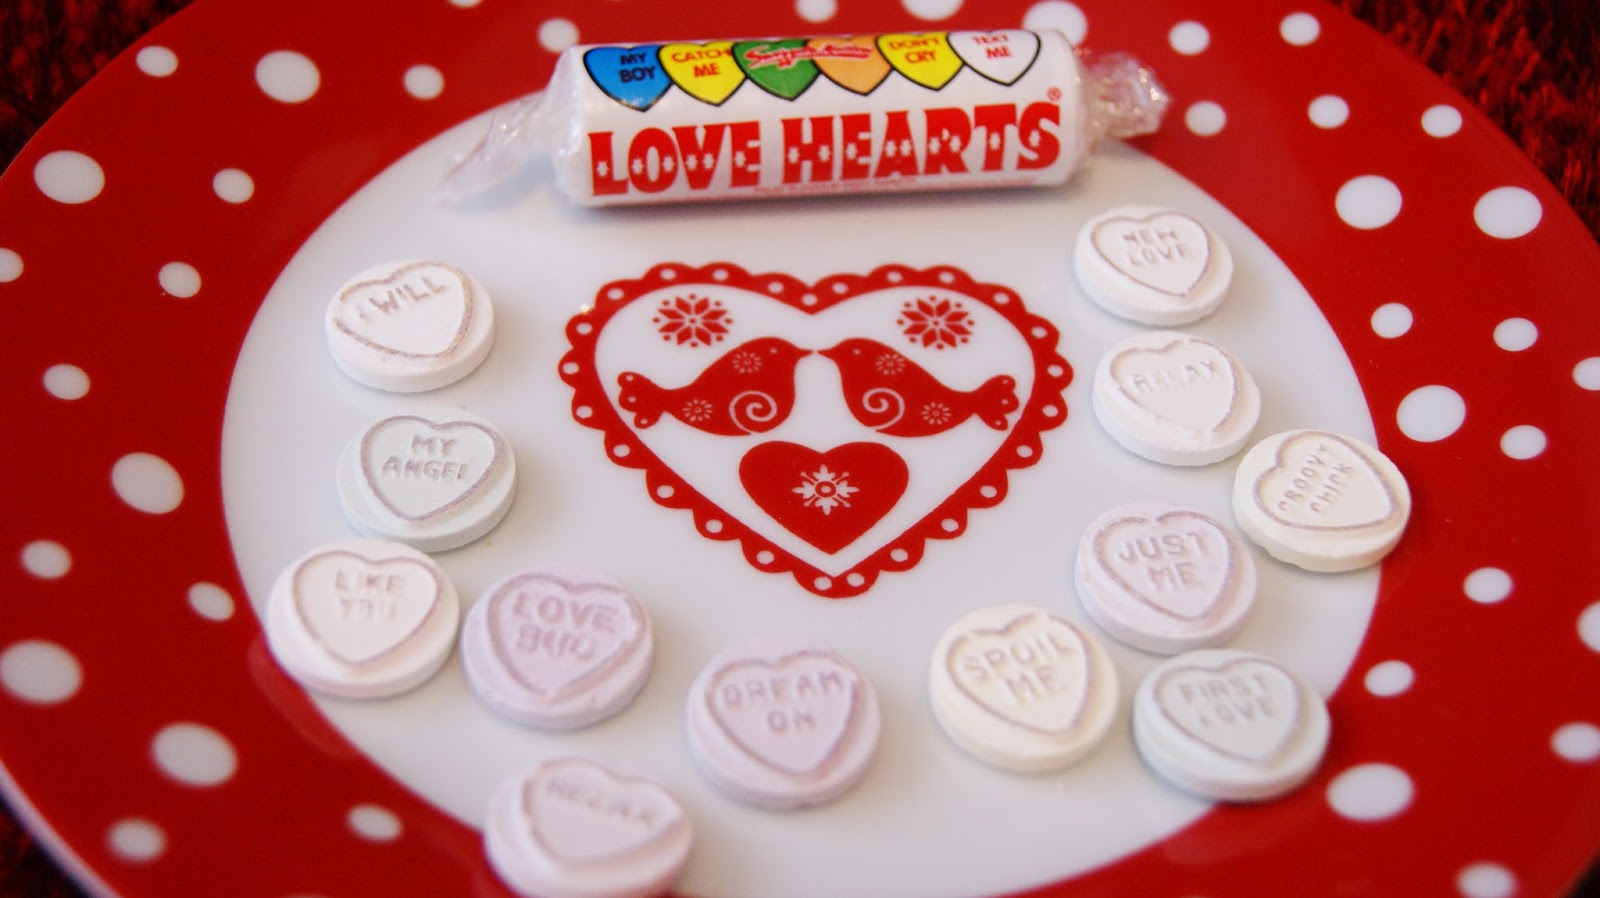 Love Hearts sweets on a plate